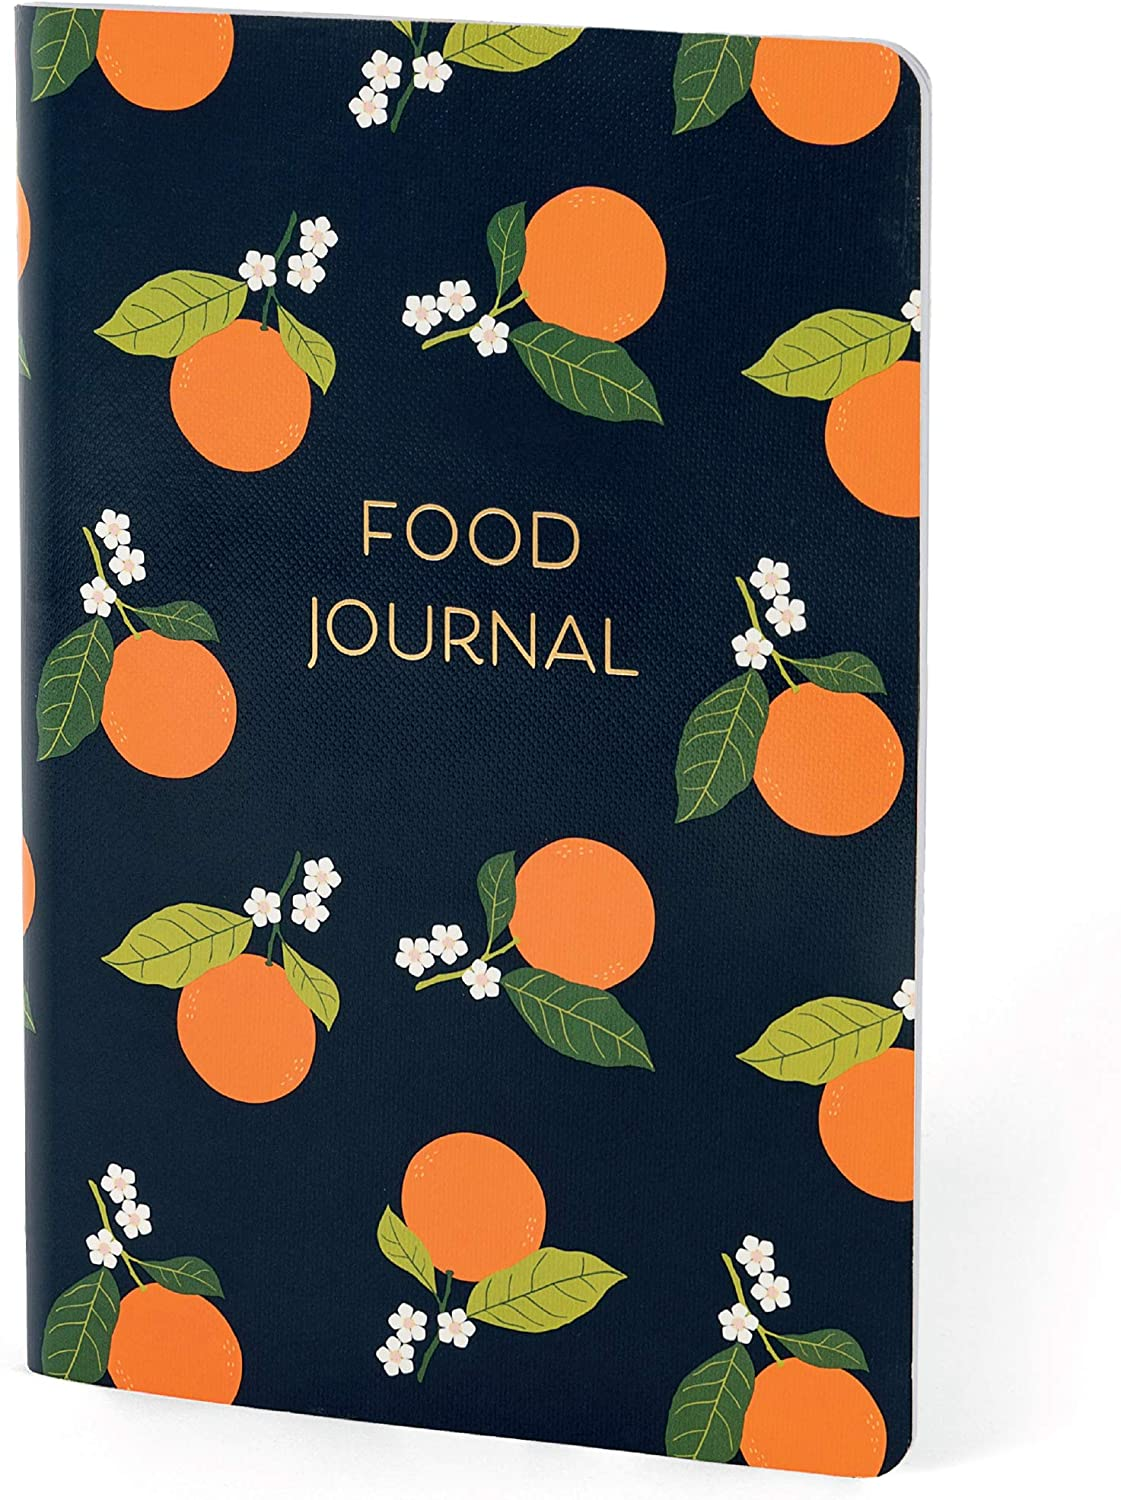 Boxclever Press Food Journal for a Healthier Lifestyle. Food Diary and Food Journal Log Book. Portable Daily Planner to Use with Weight Watchers, Diets or Personal Training Plans. (Orange Blossom)